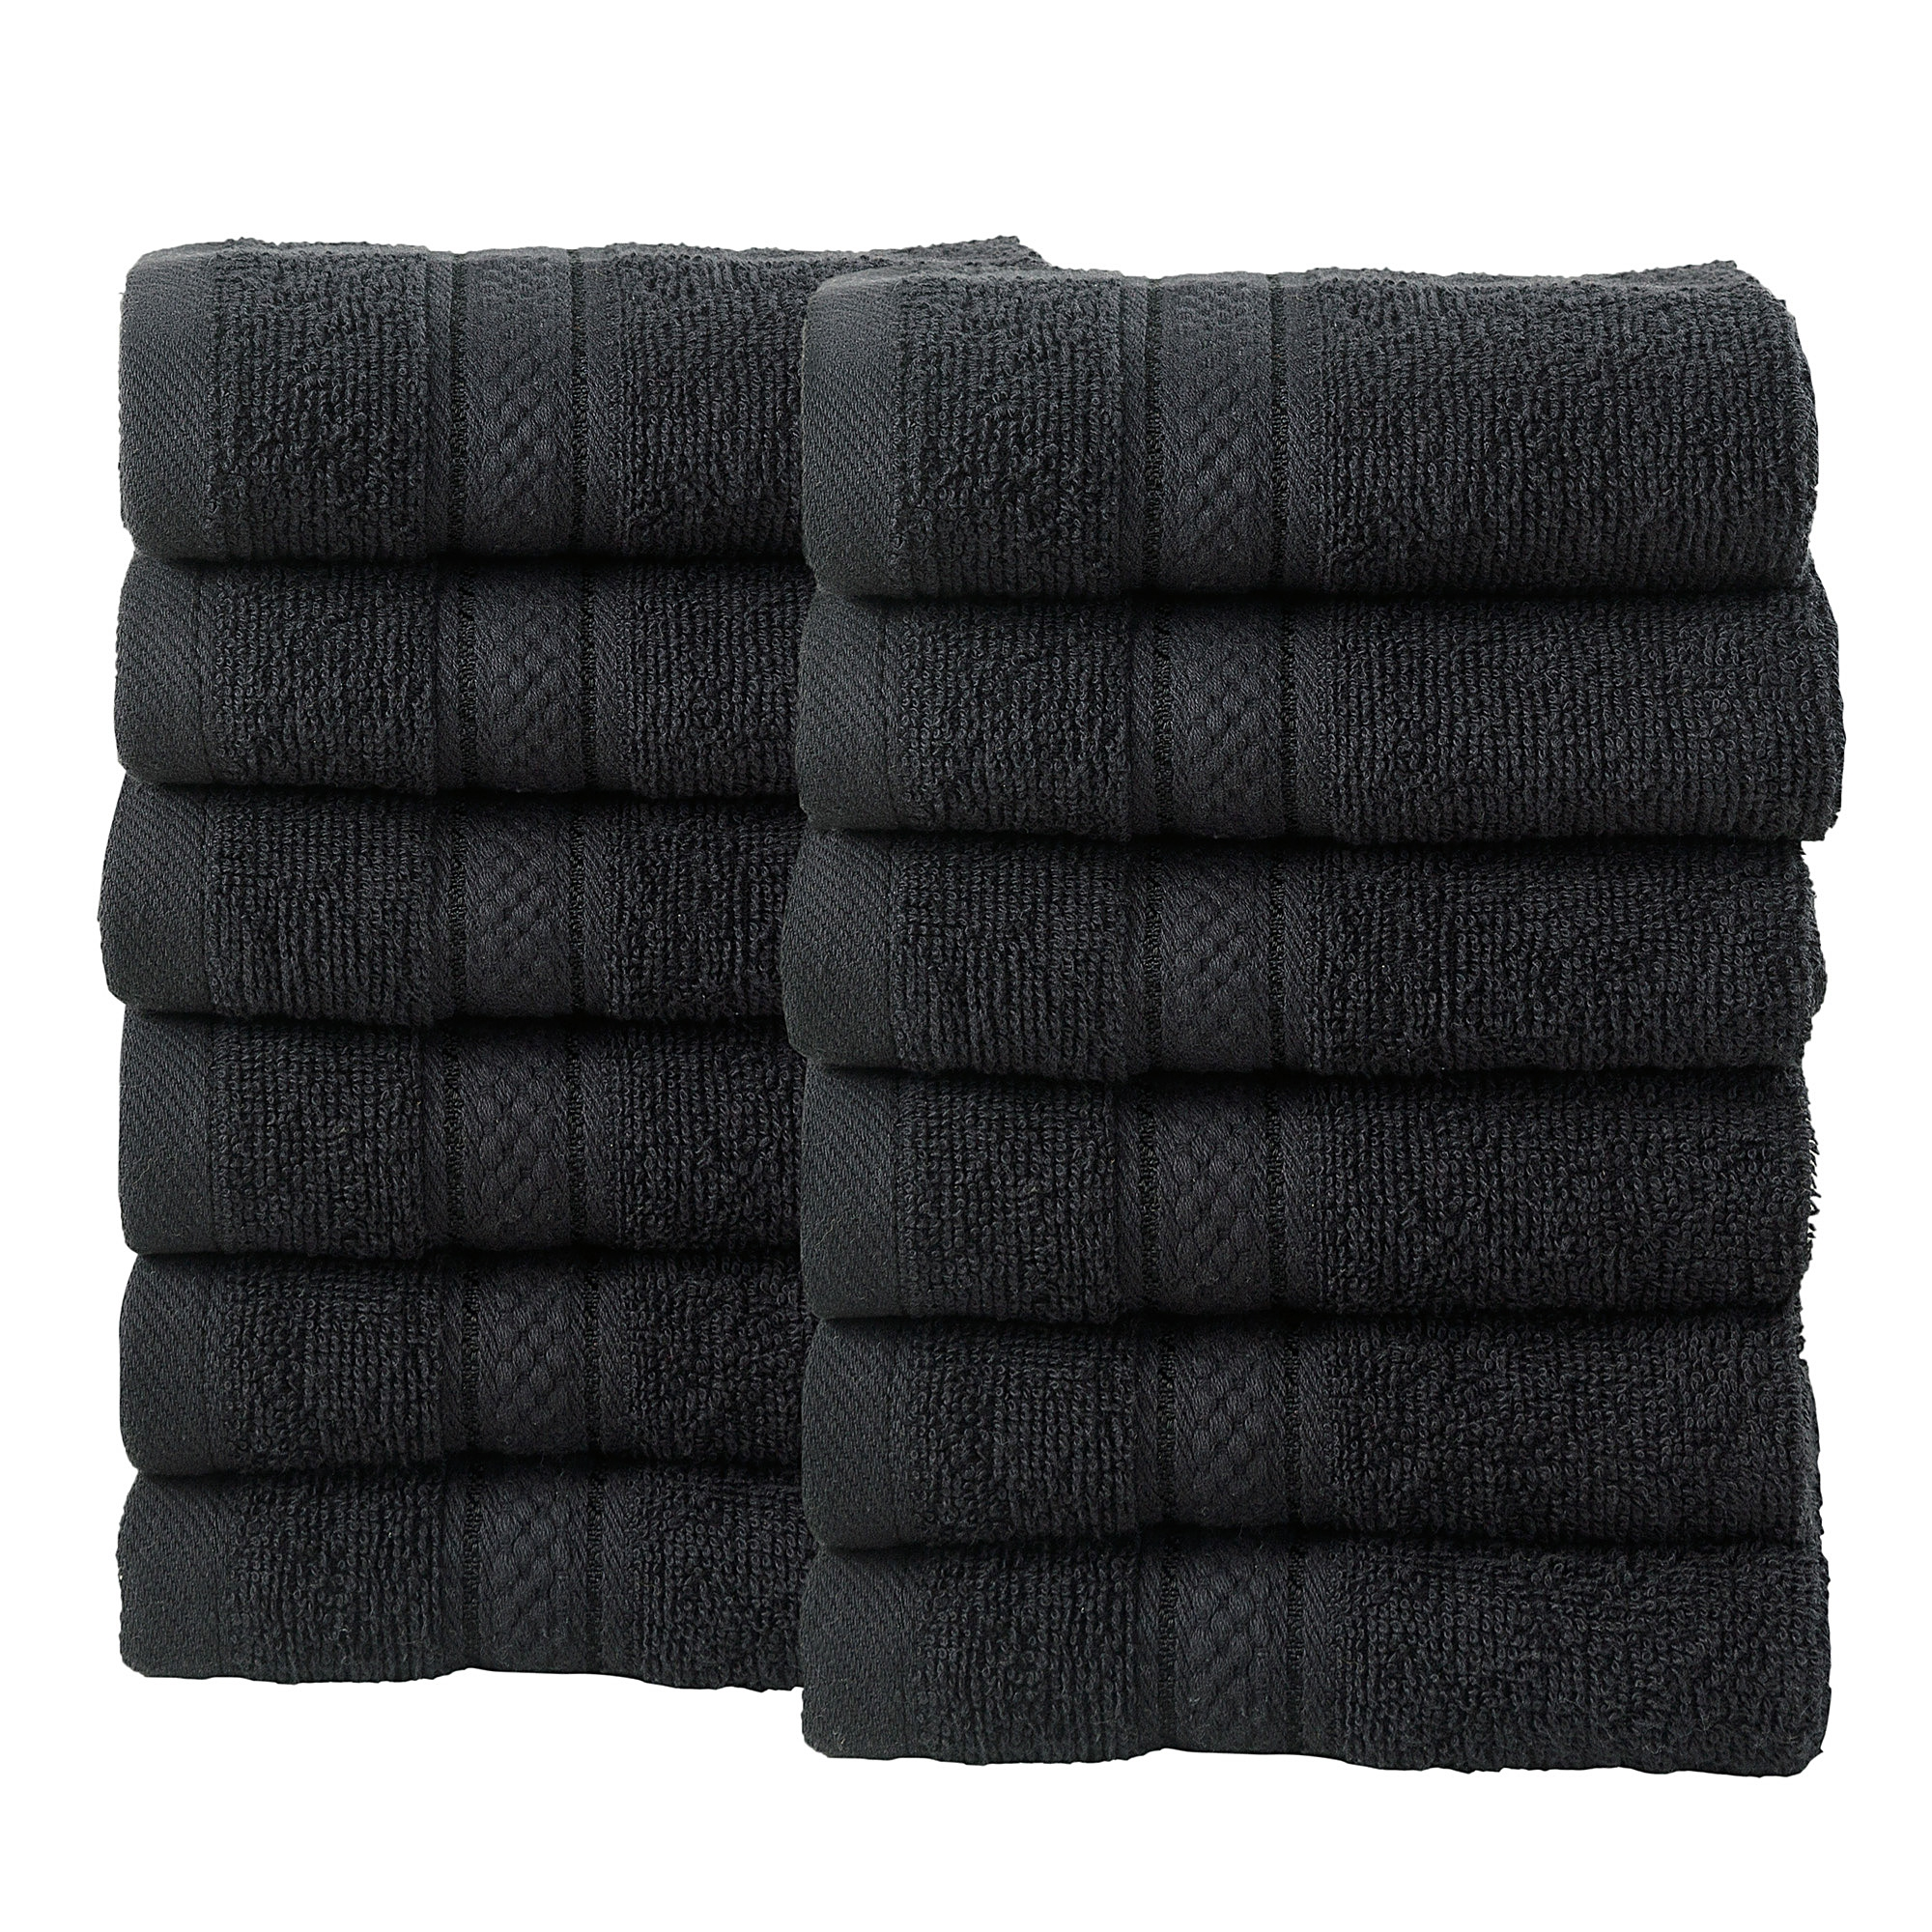 12 Pcs Face Cotton Towel Bale Set Black Plain